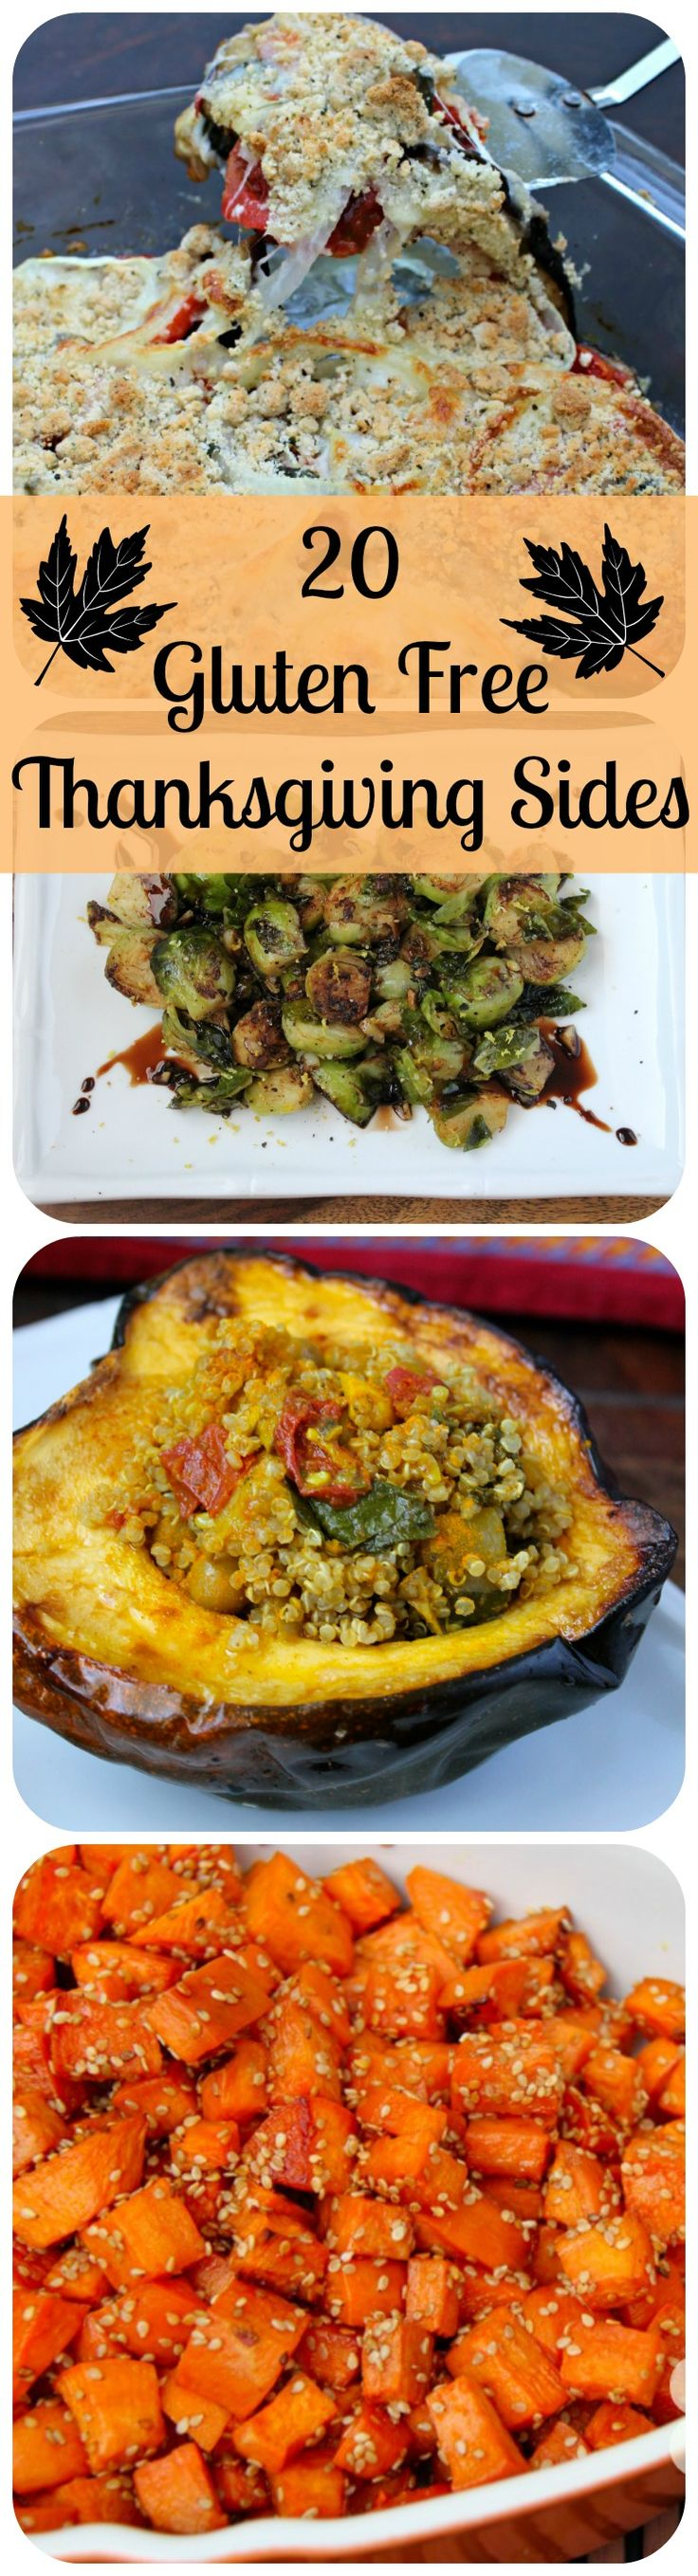 20 Gluten-Free Thanksgiving Side Dishes @ Healy Eats Real #gluten #glutenfree #thanksgiving